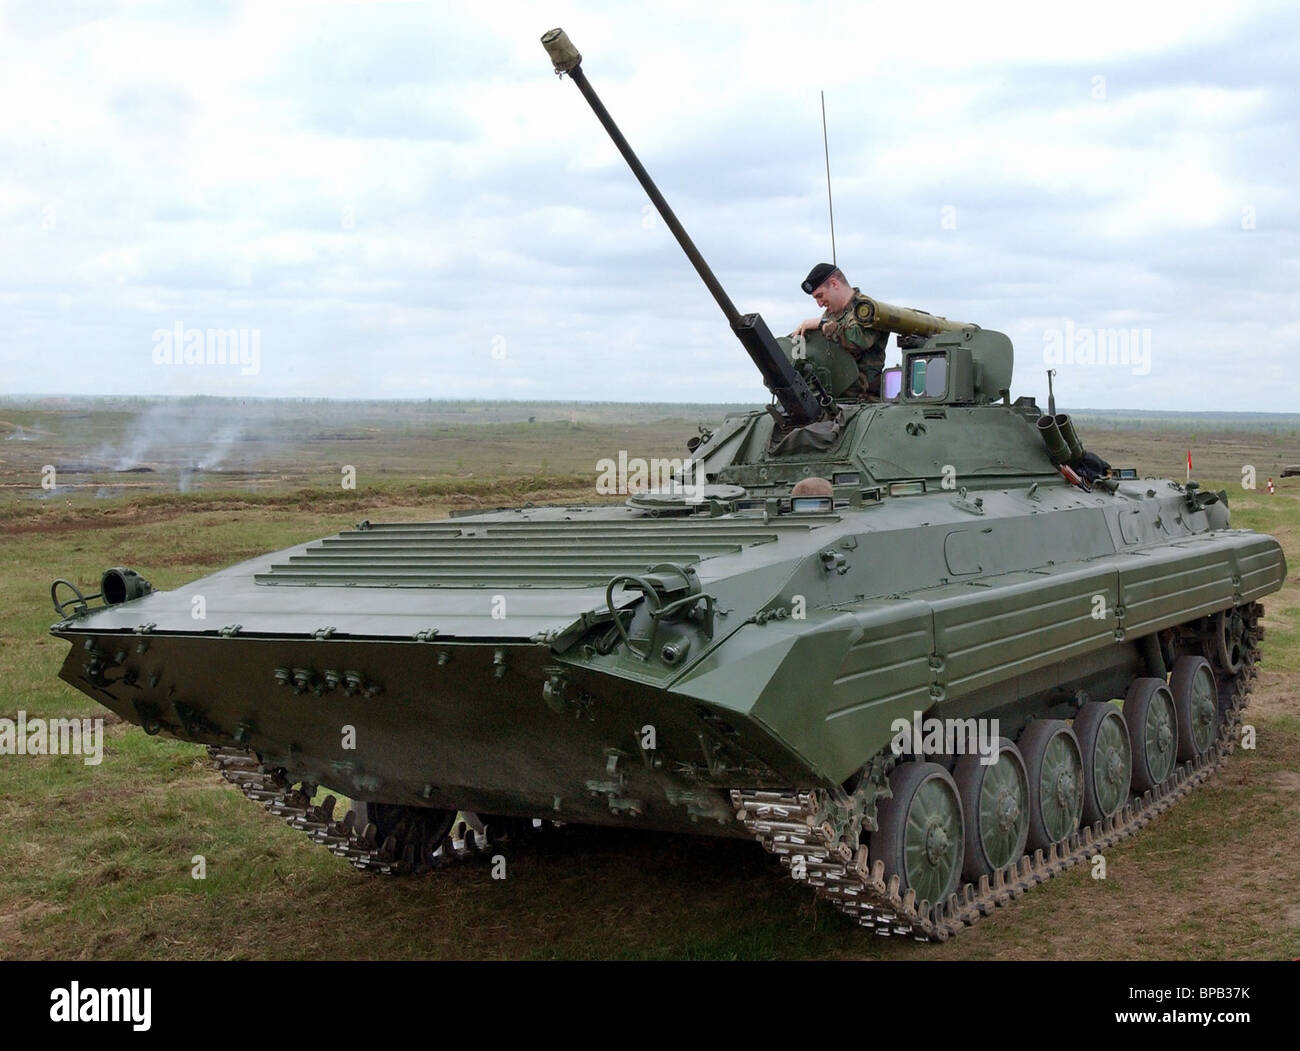 MILEX-2005 International Exhibition of Arms and Military Engineering opened in Minsk - Stock Image